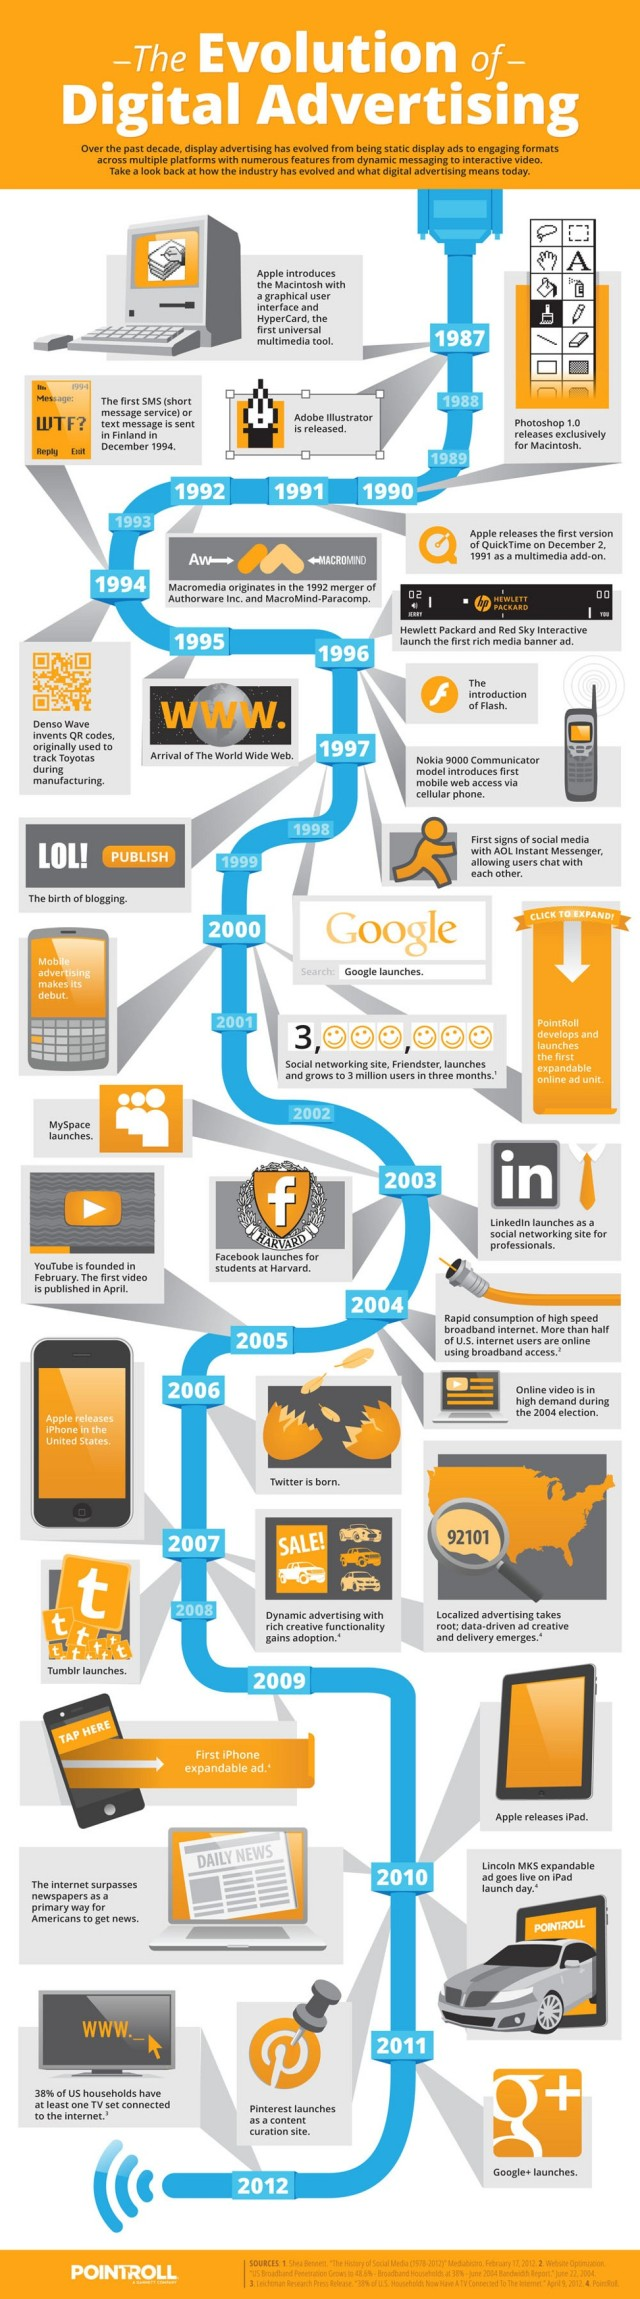 evolution-of-digital-advertising-infographic-infographicsmania